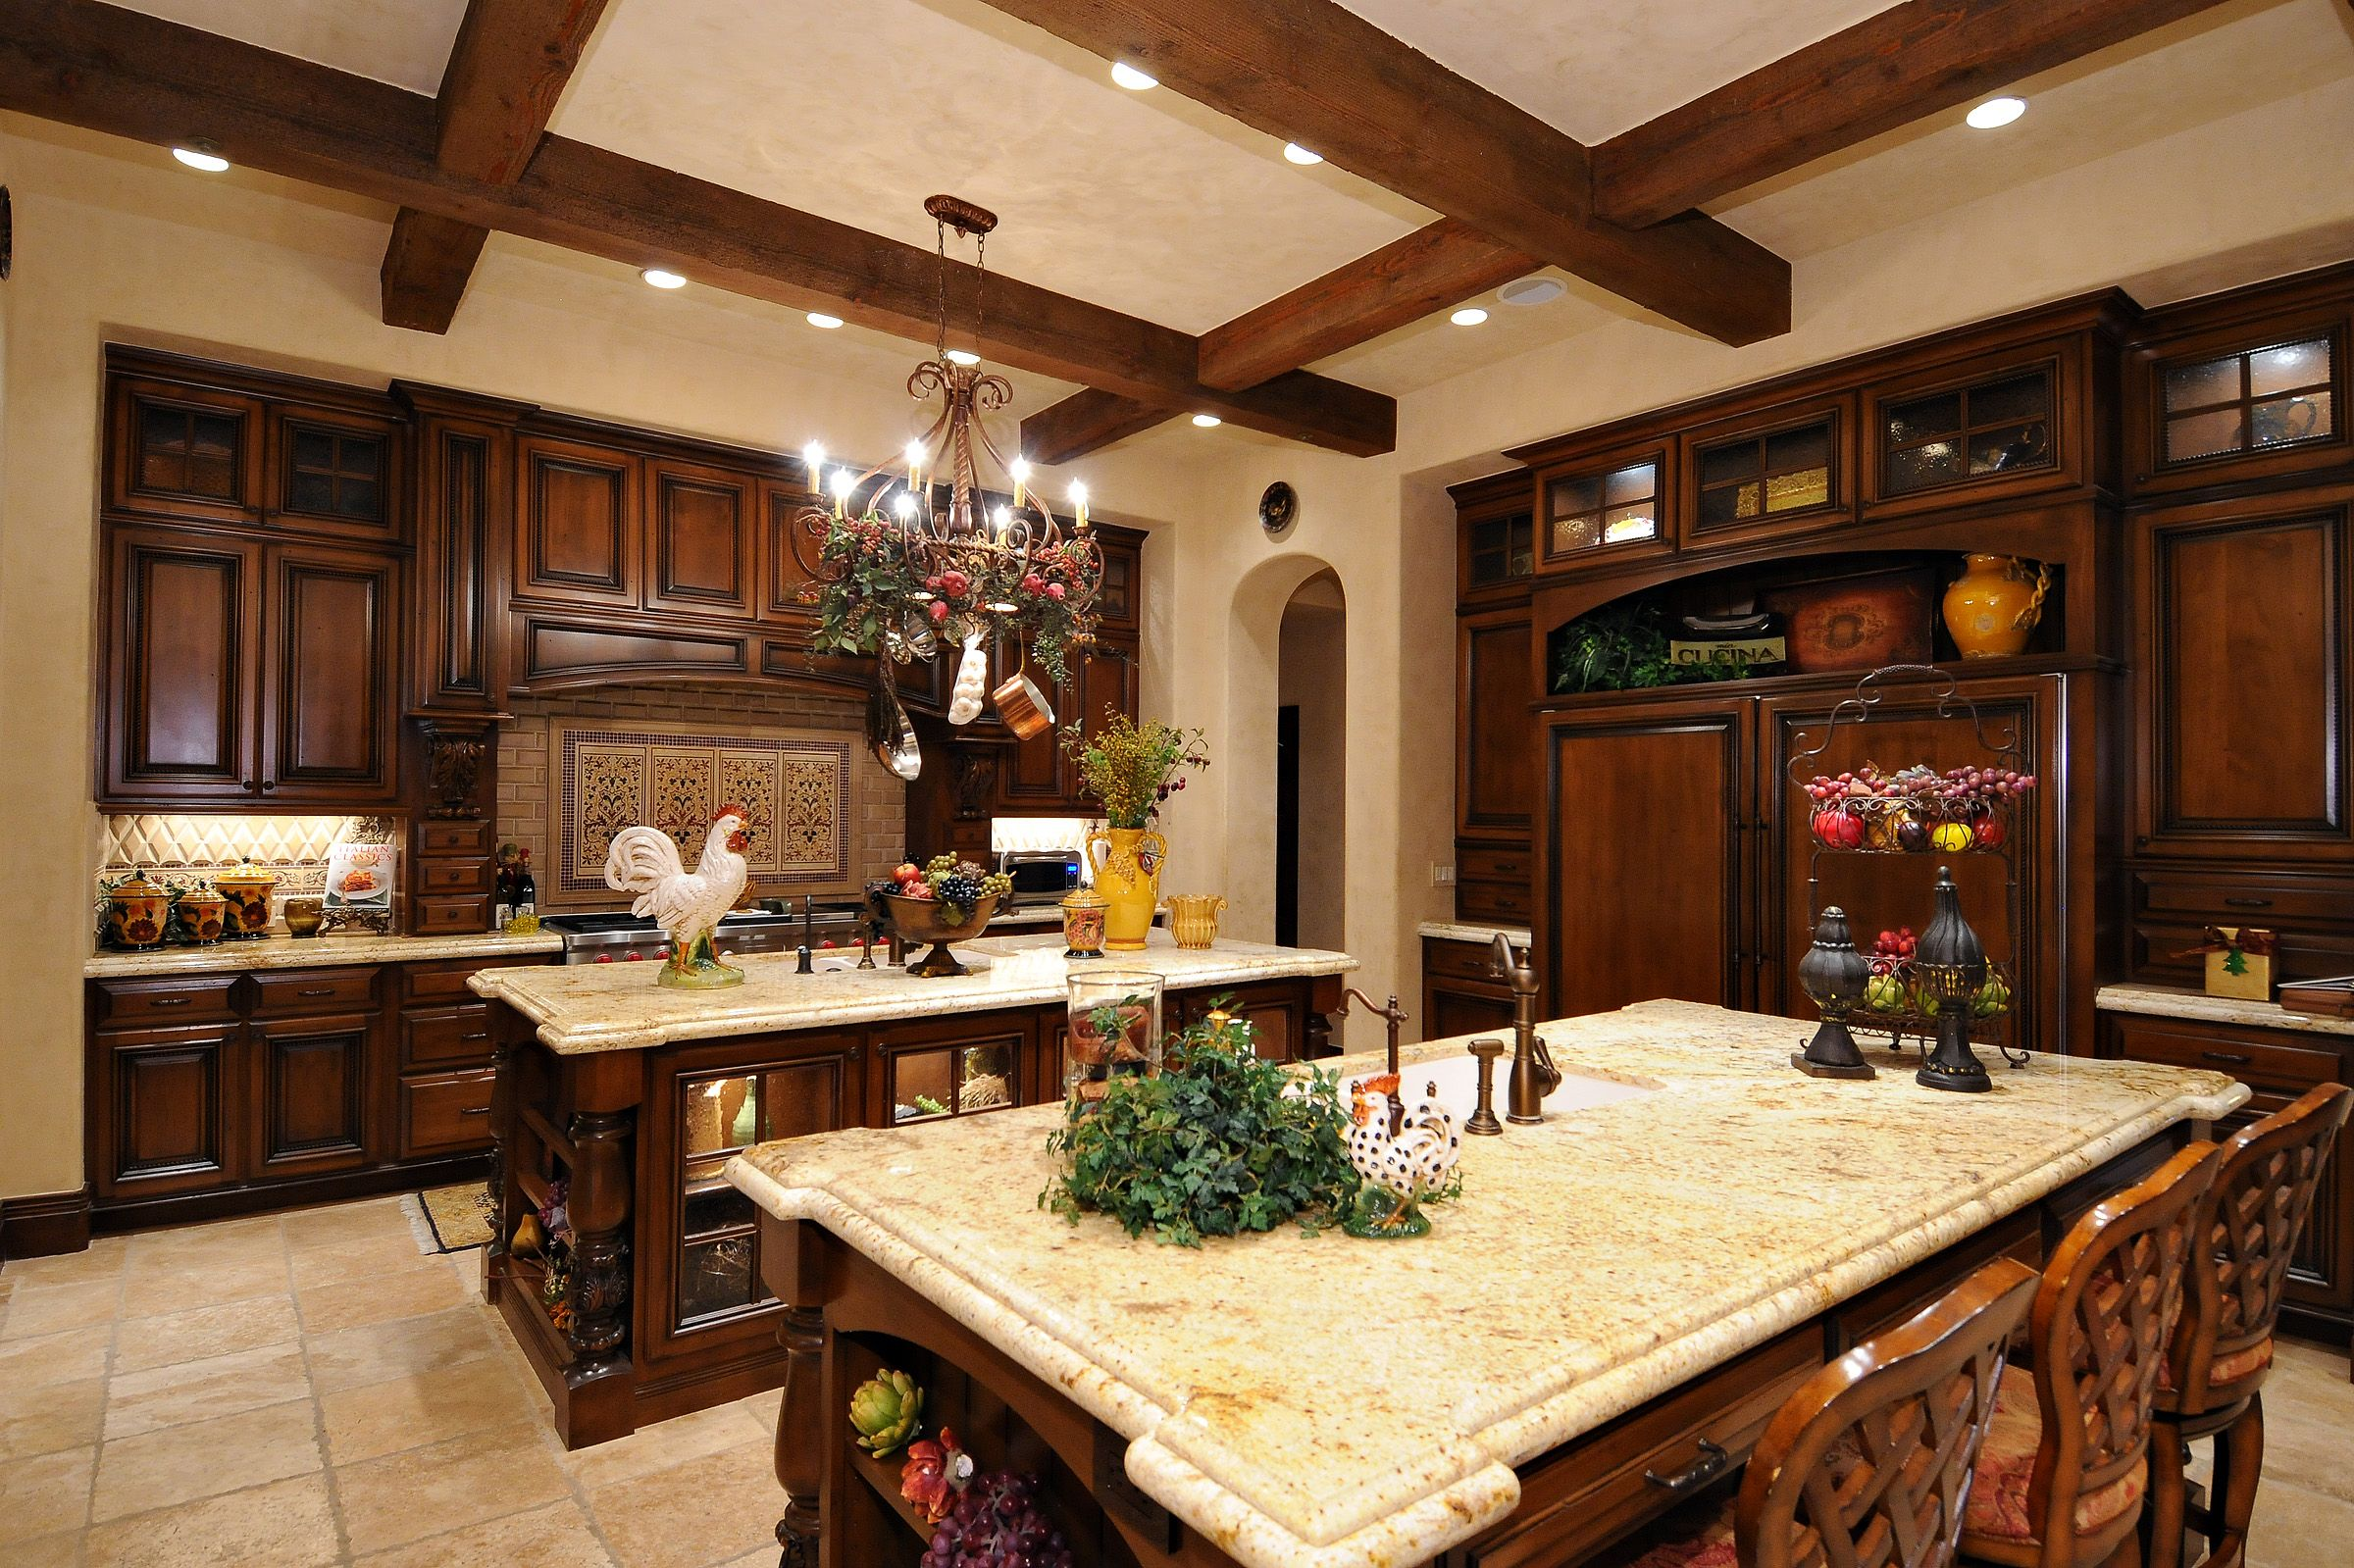 20 Spanish Style Homes From Some Country To Inspire You Spanish Colonial Spanish Style And